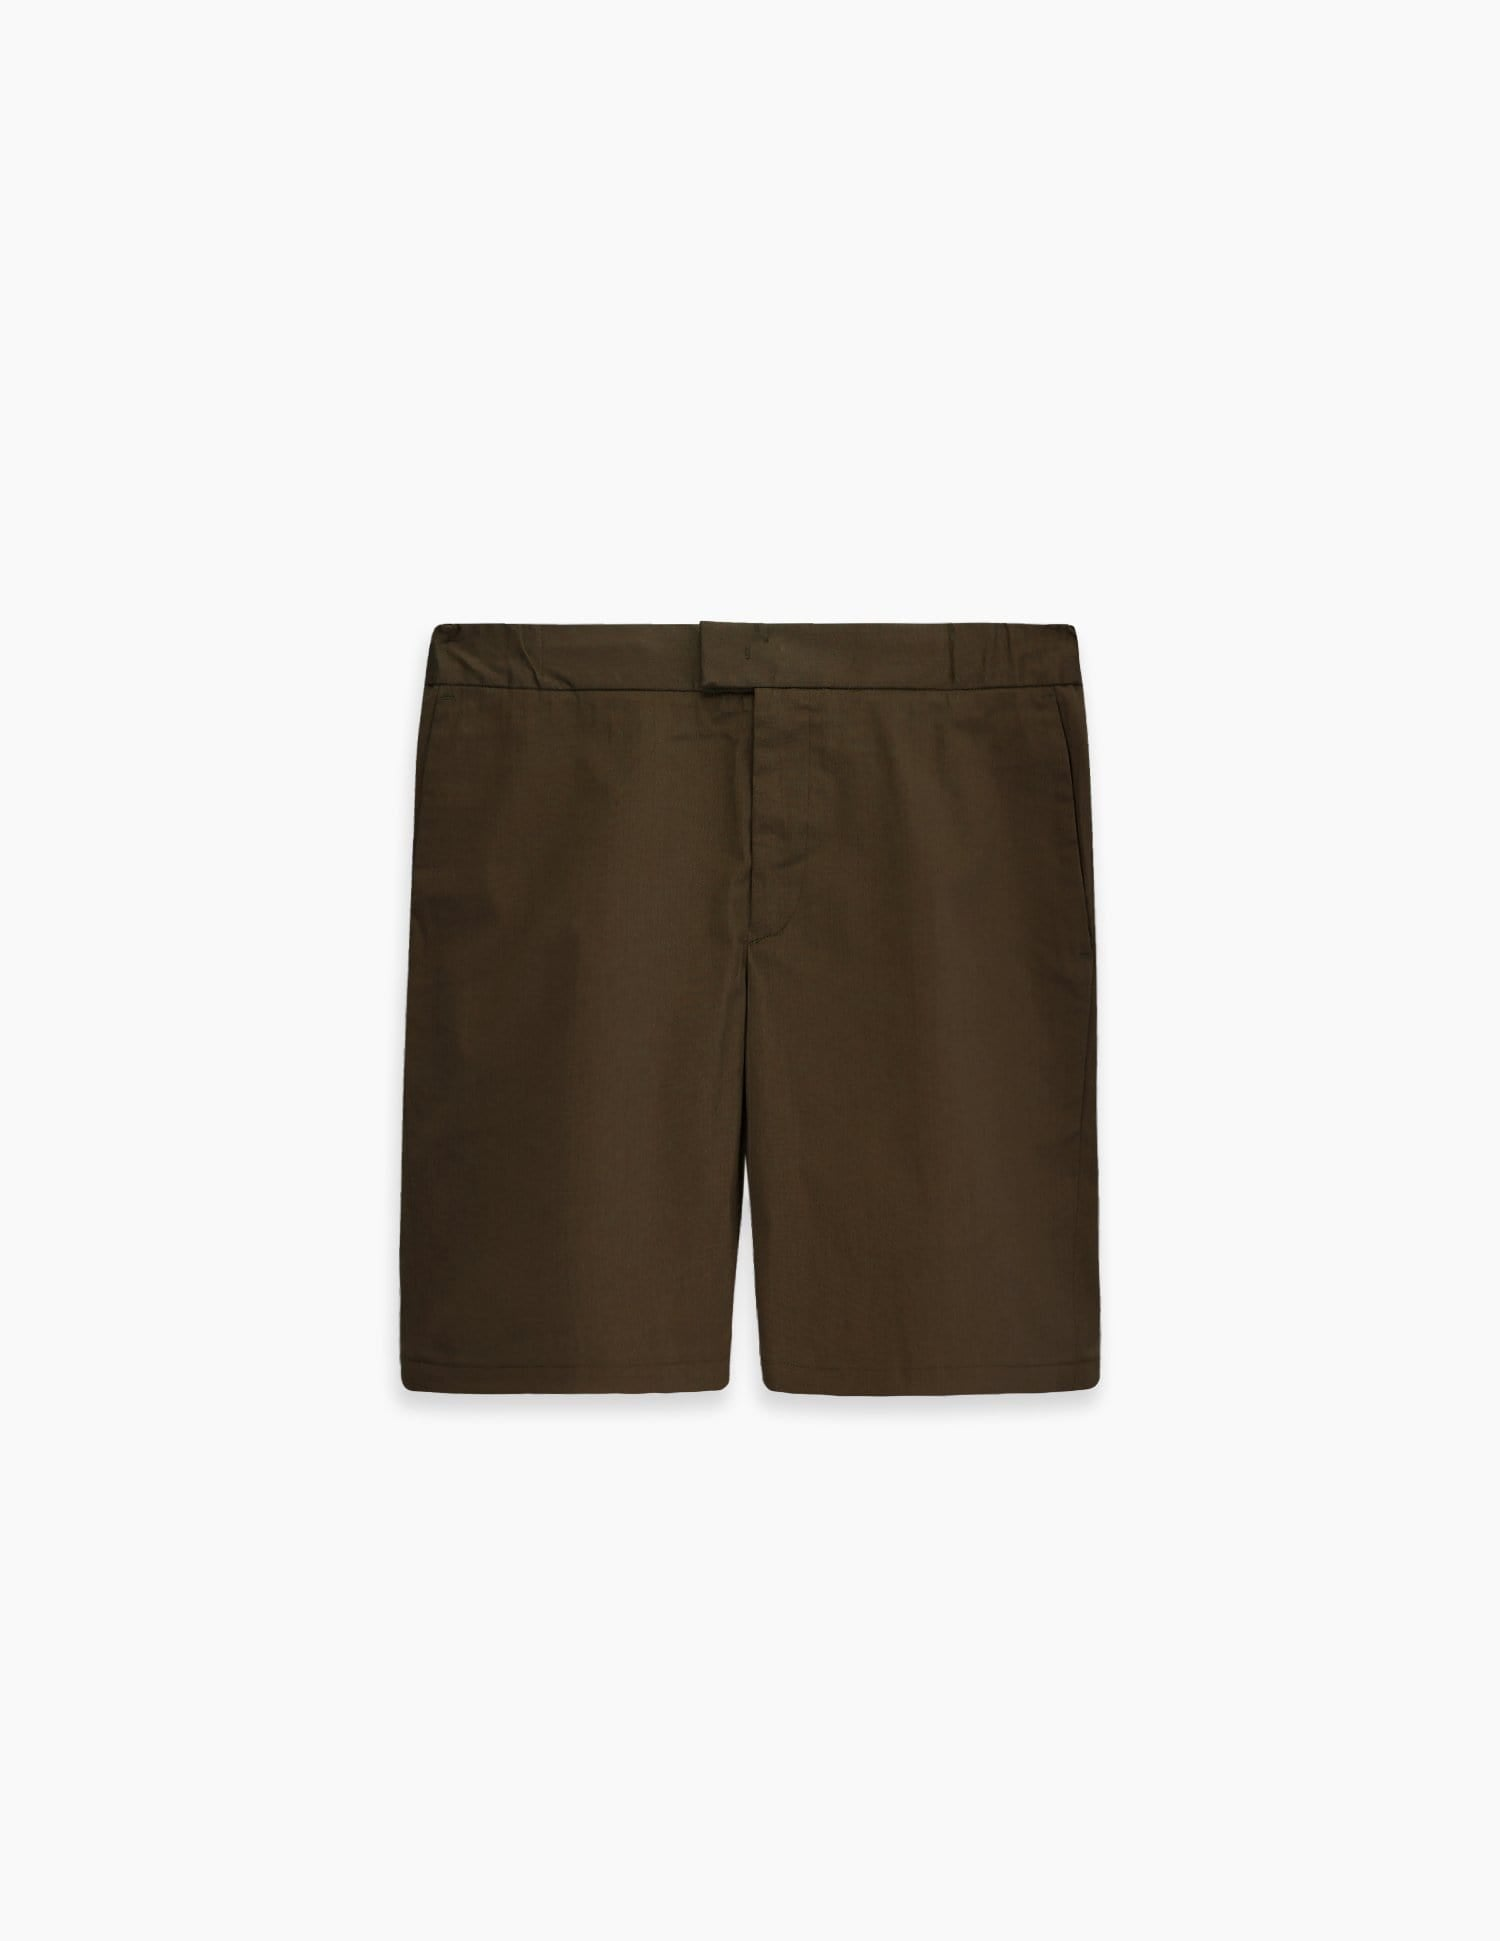 The 12 Shorts 9"